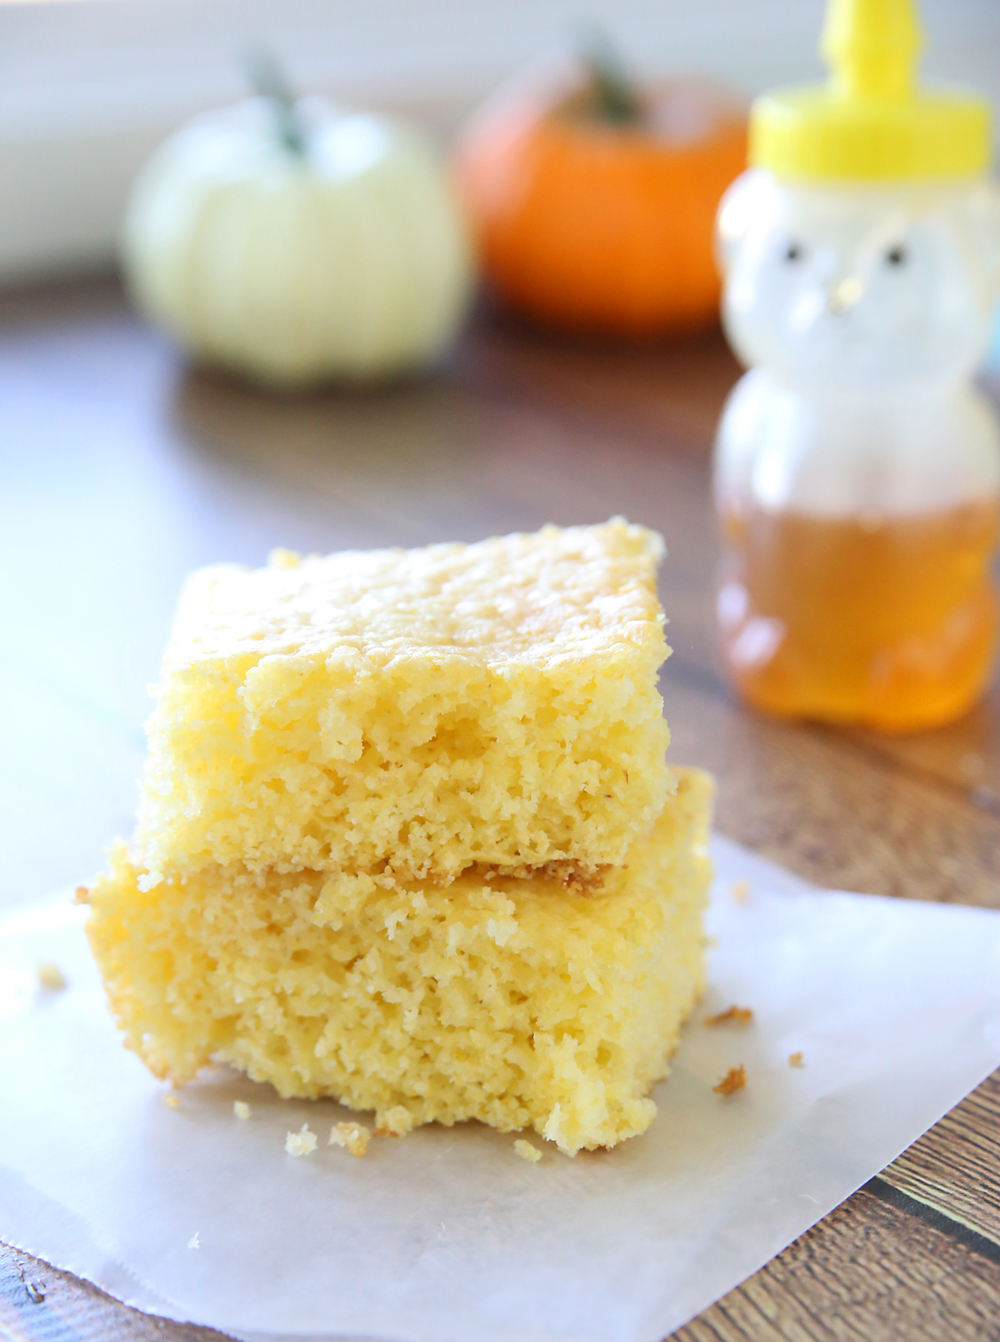 Moist, sweet cornbread just like Grandma used to make! This easy Jiffy cornbread recipe uses a cornbread mix + a yellow cake mix for the best easy cornbread ever!